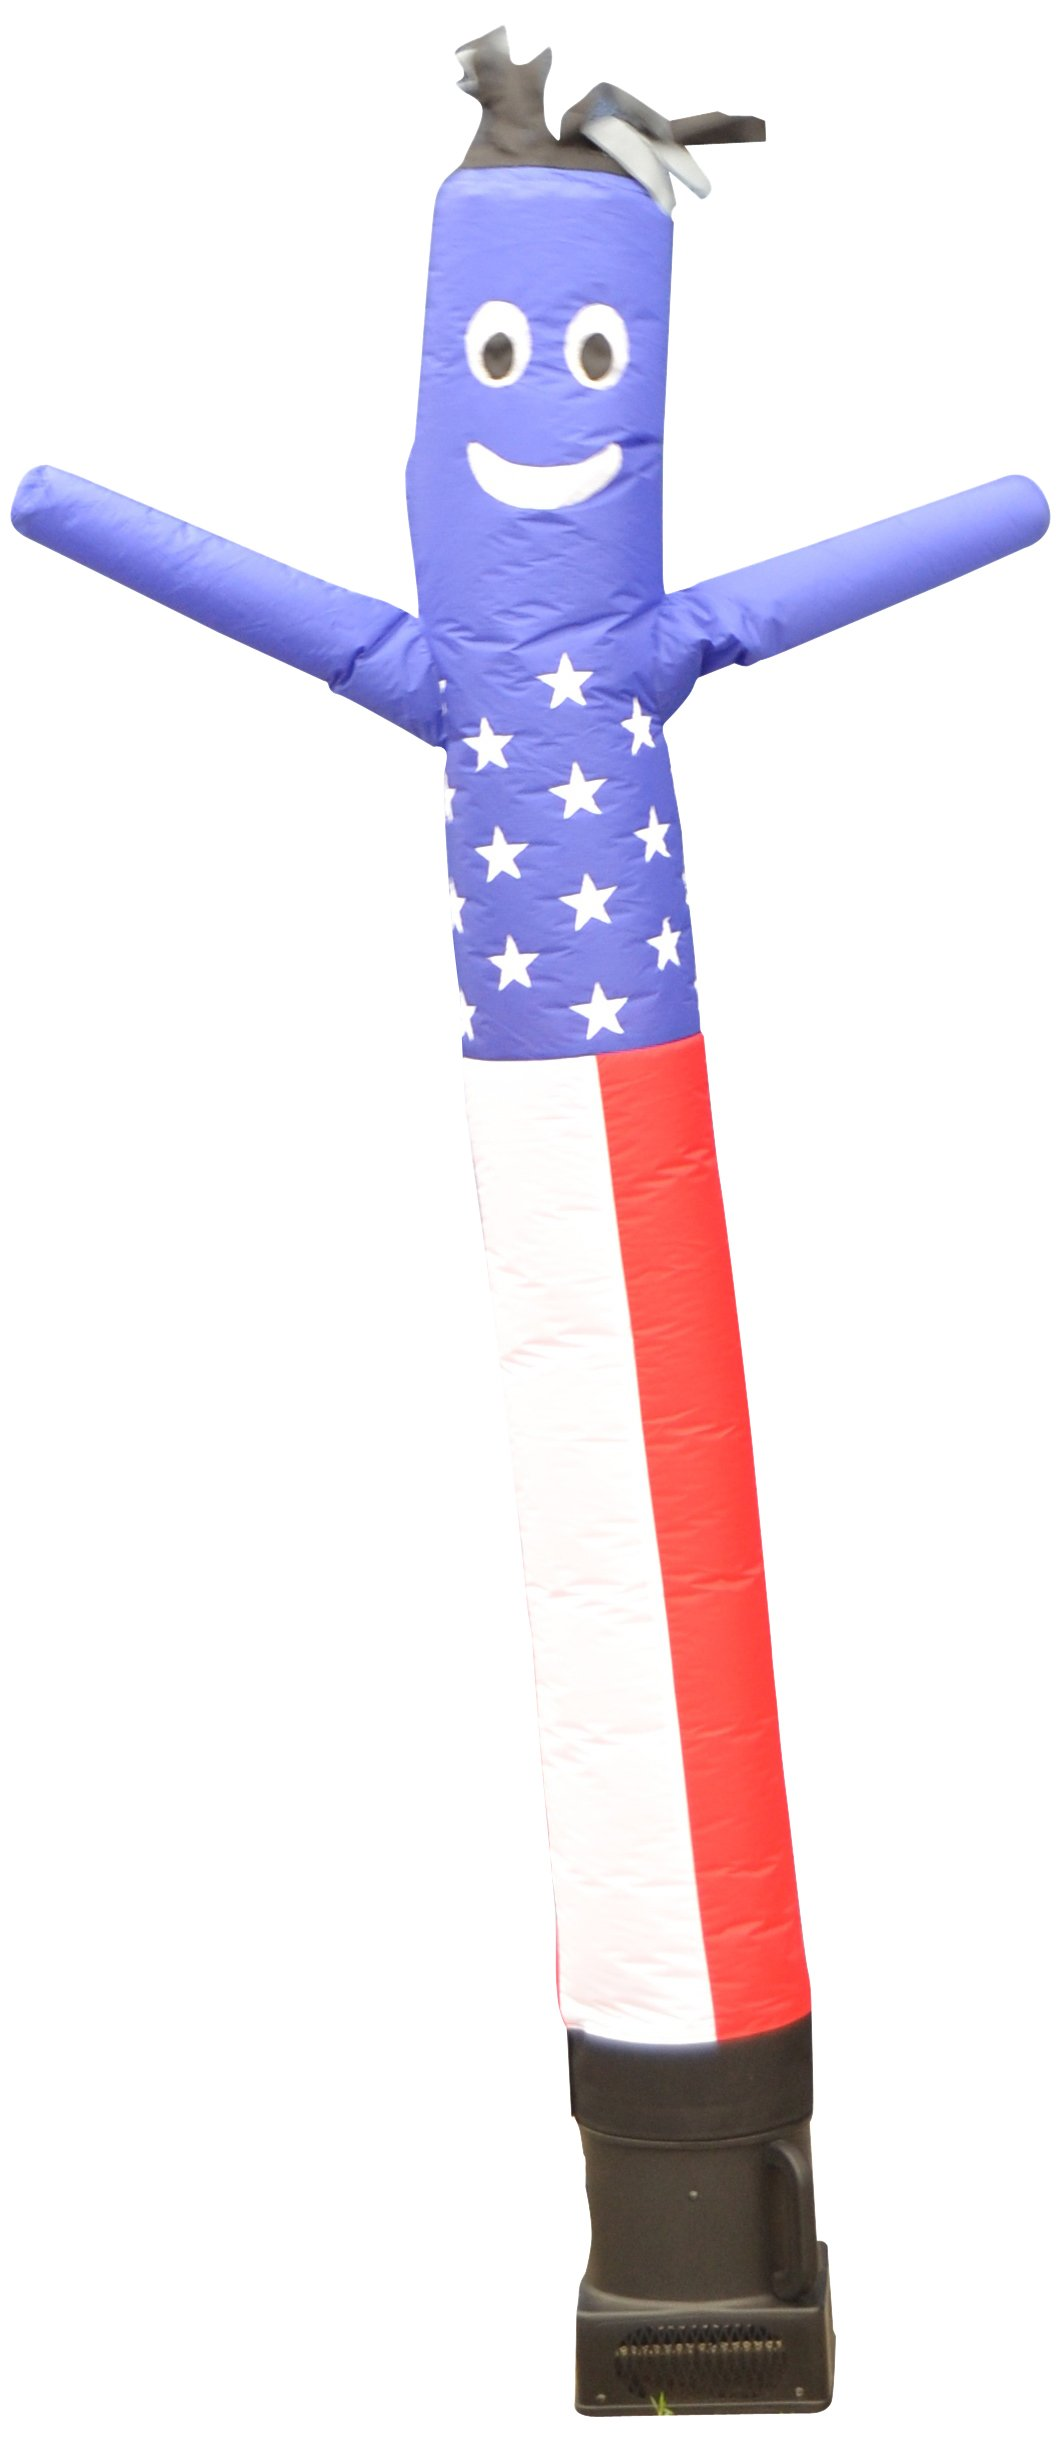 LookOurWay Air Dancers Inflatable Tube Man Complete Set with 1/4 HP Sky Dancer Blower, 6-Feet, American Flag by LookOurWay